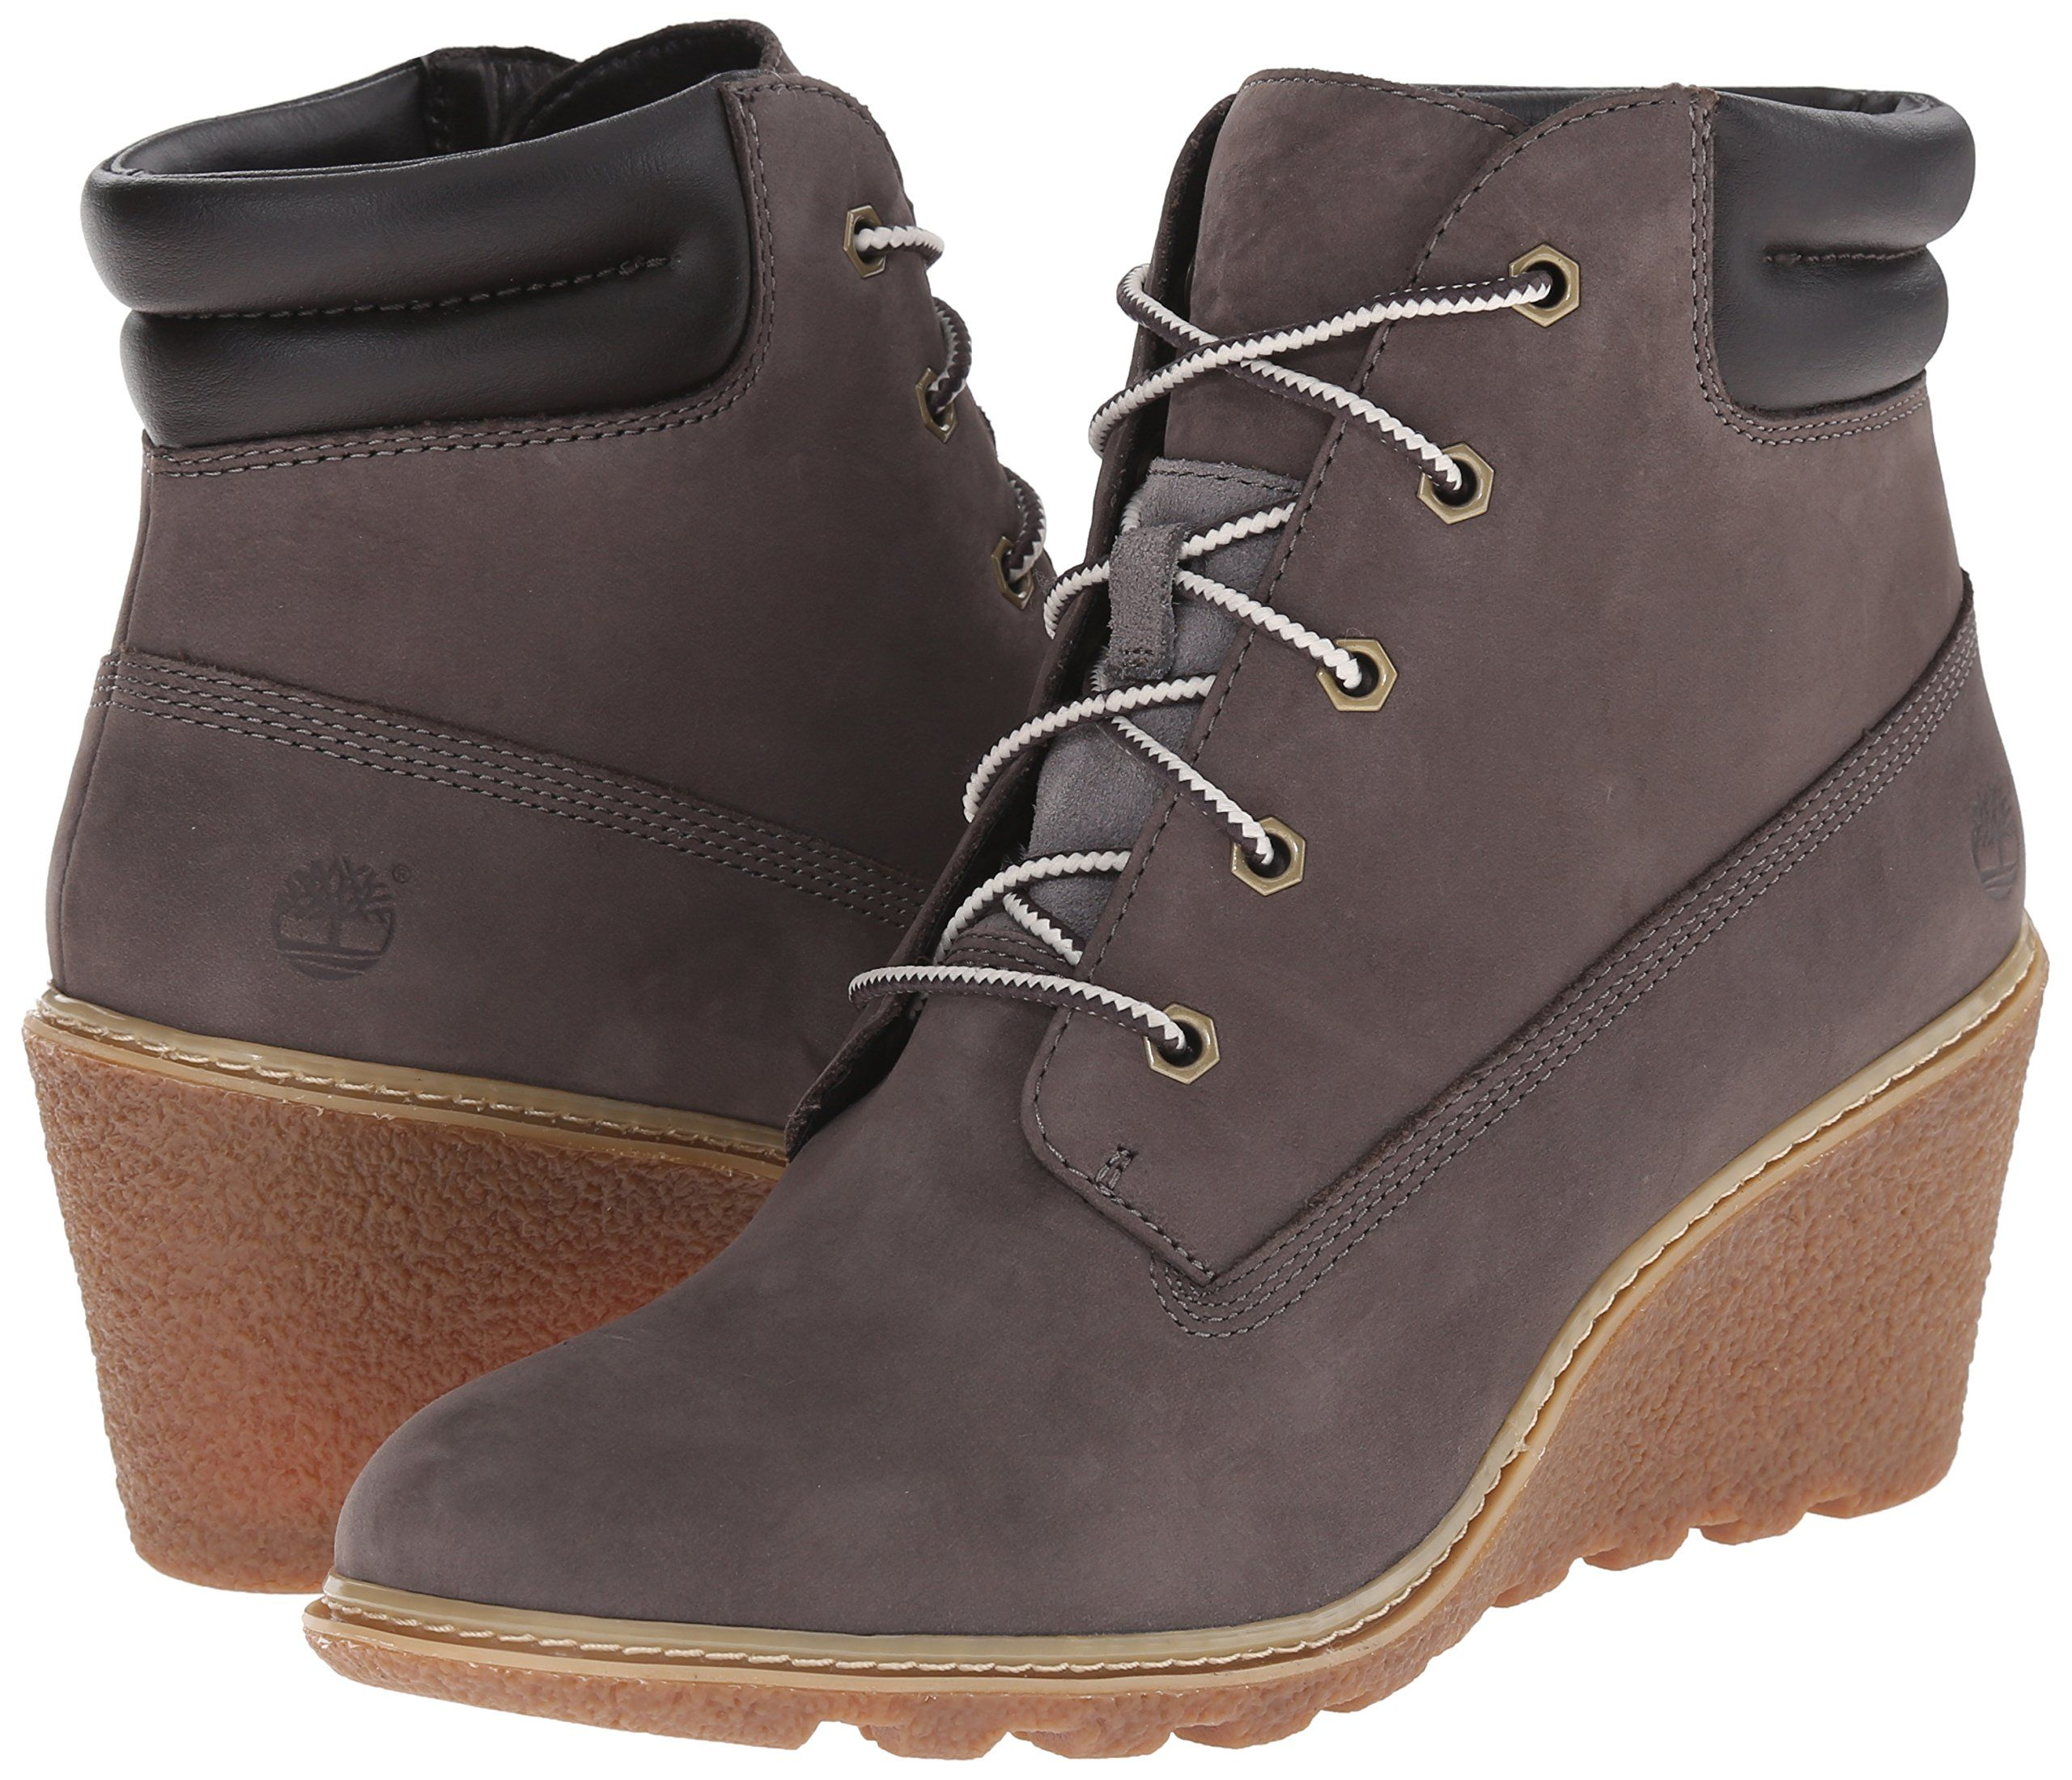 e440fc49aae8 Timberland Women s Amston 6 Inch Winter Boot